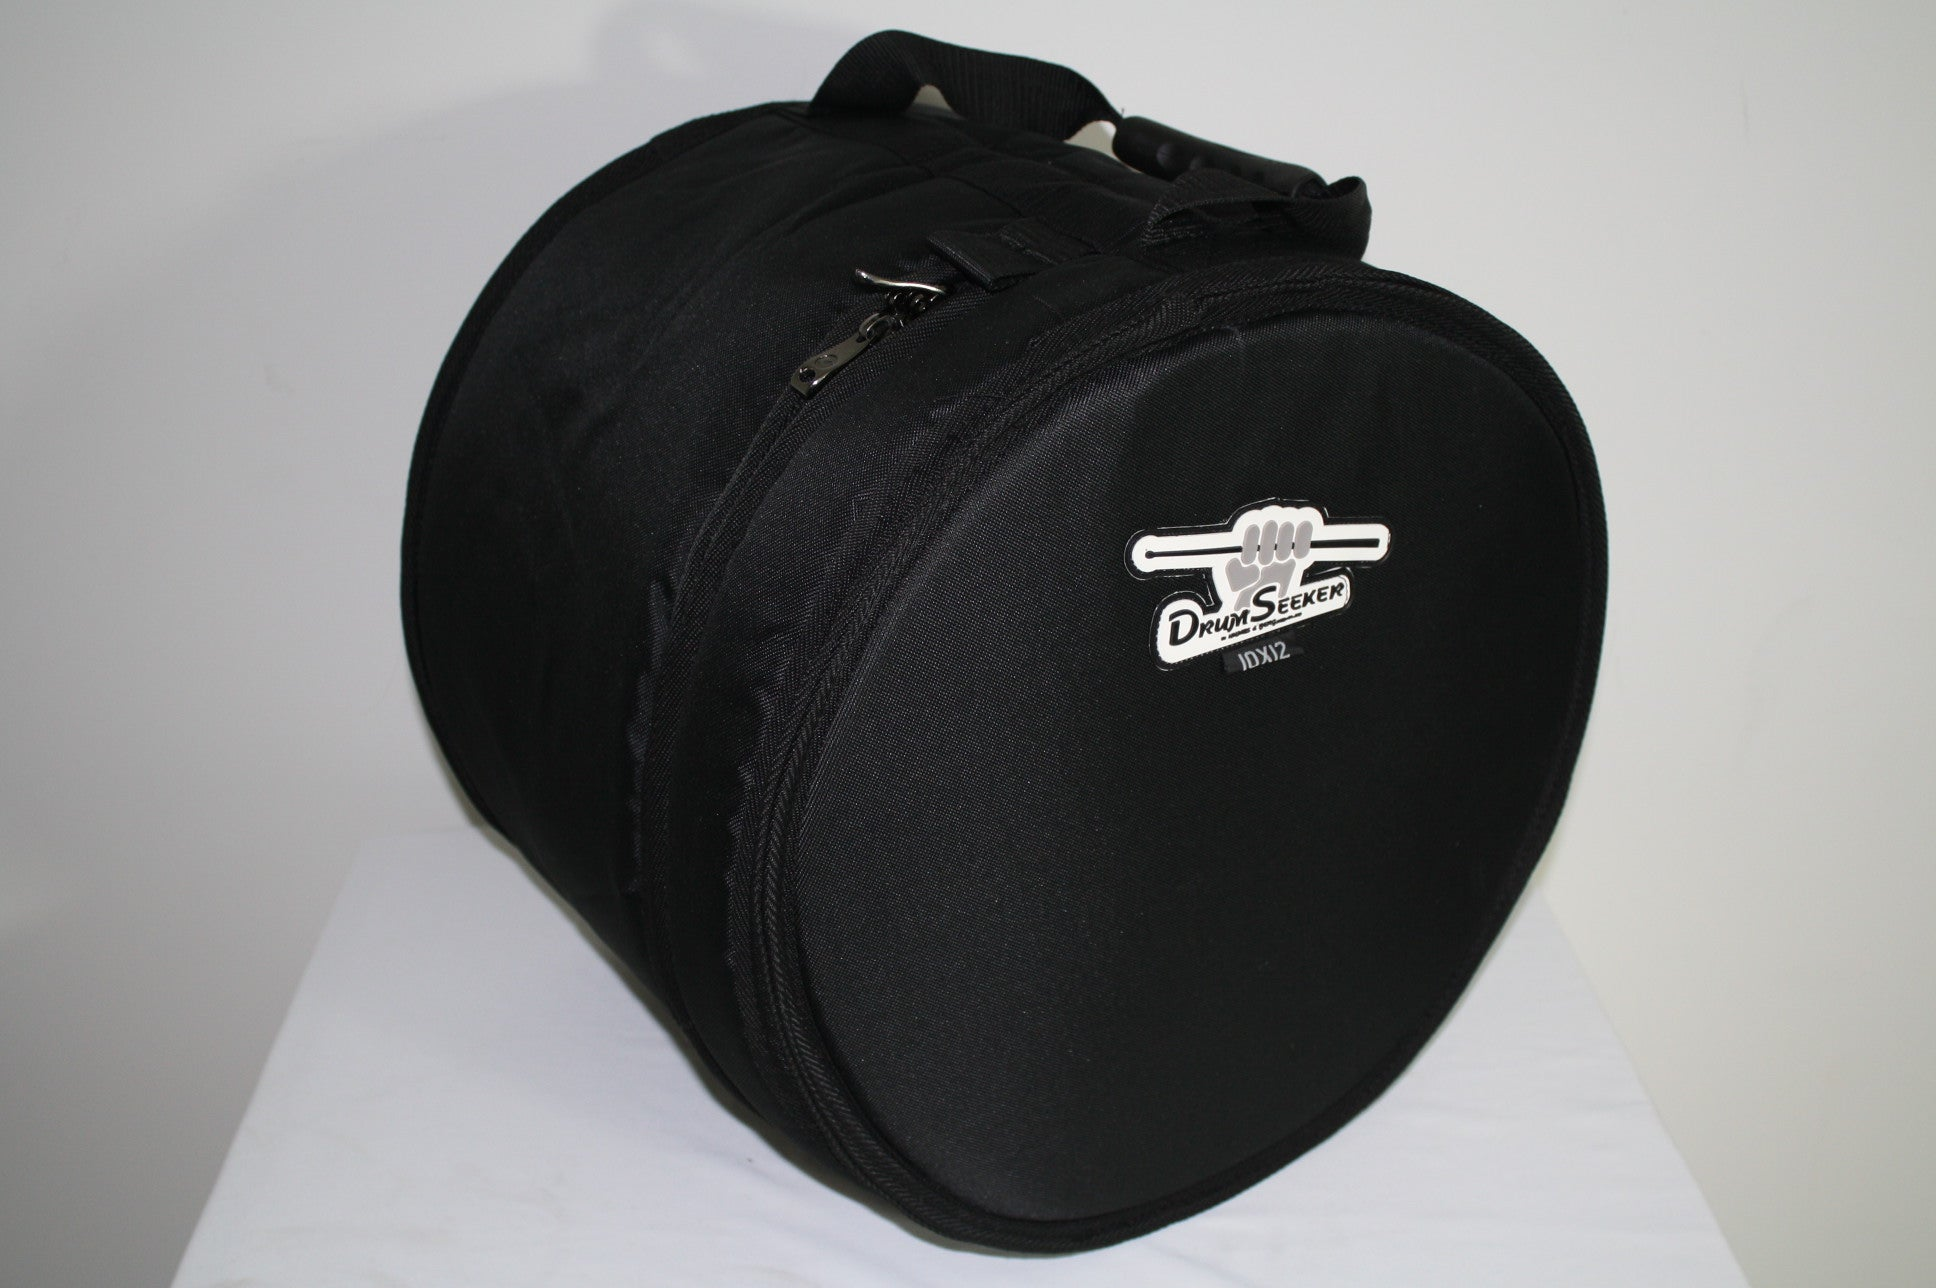 H&B  Drum Seeker 14 x 15 Inches Floor Tom Drum Bag